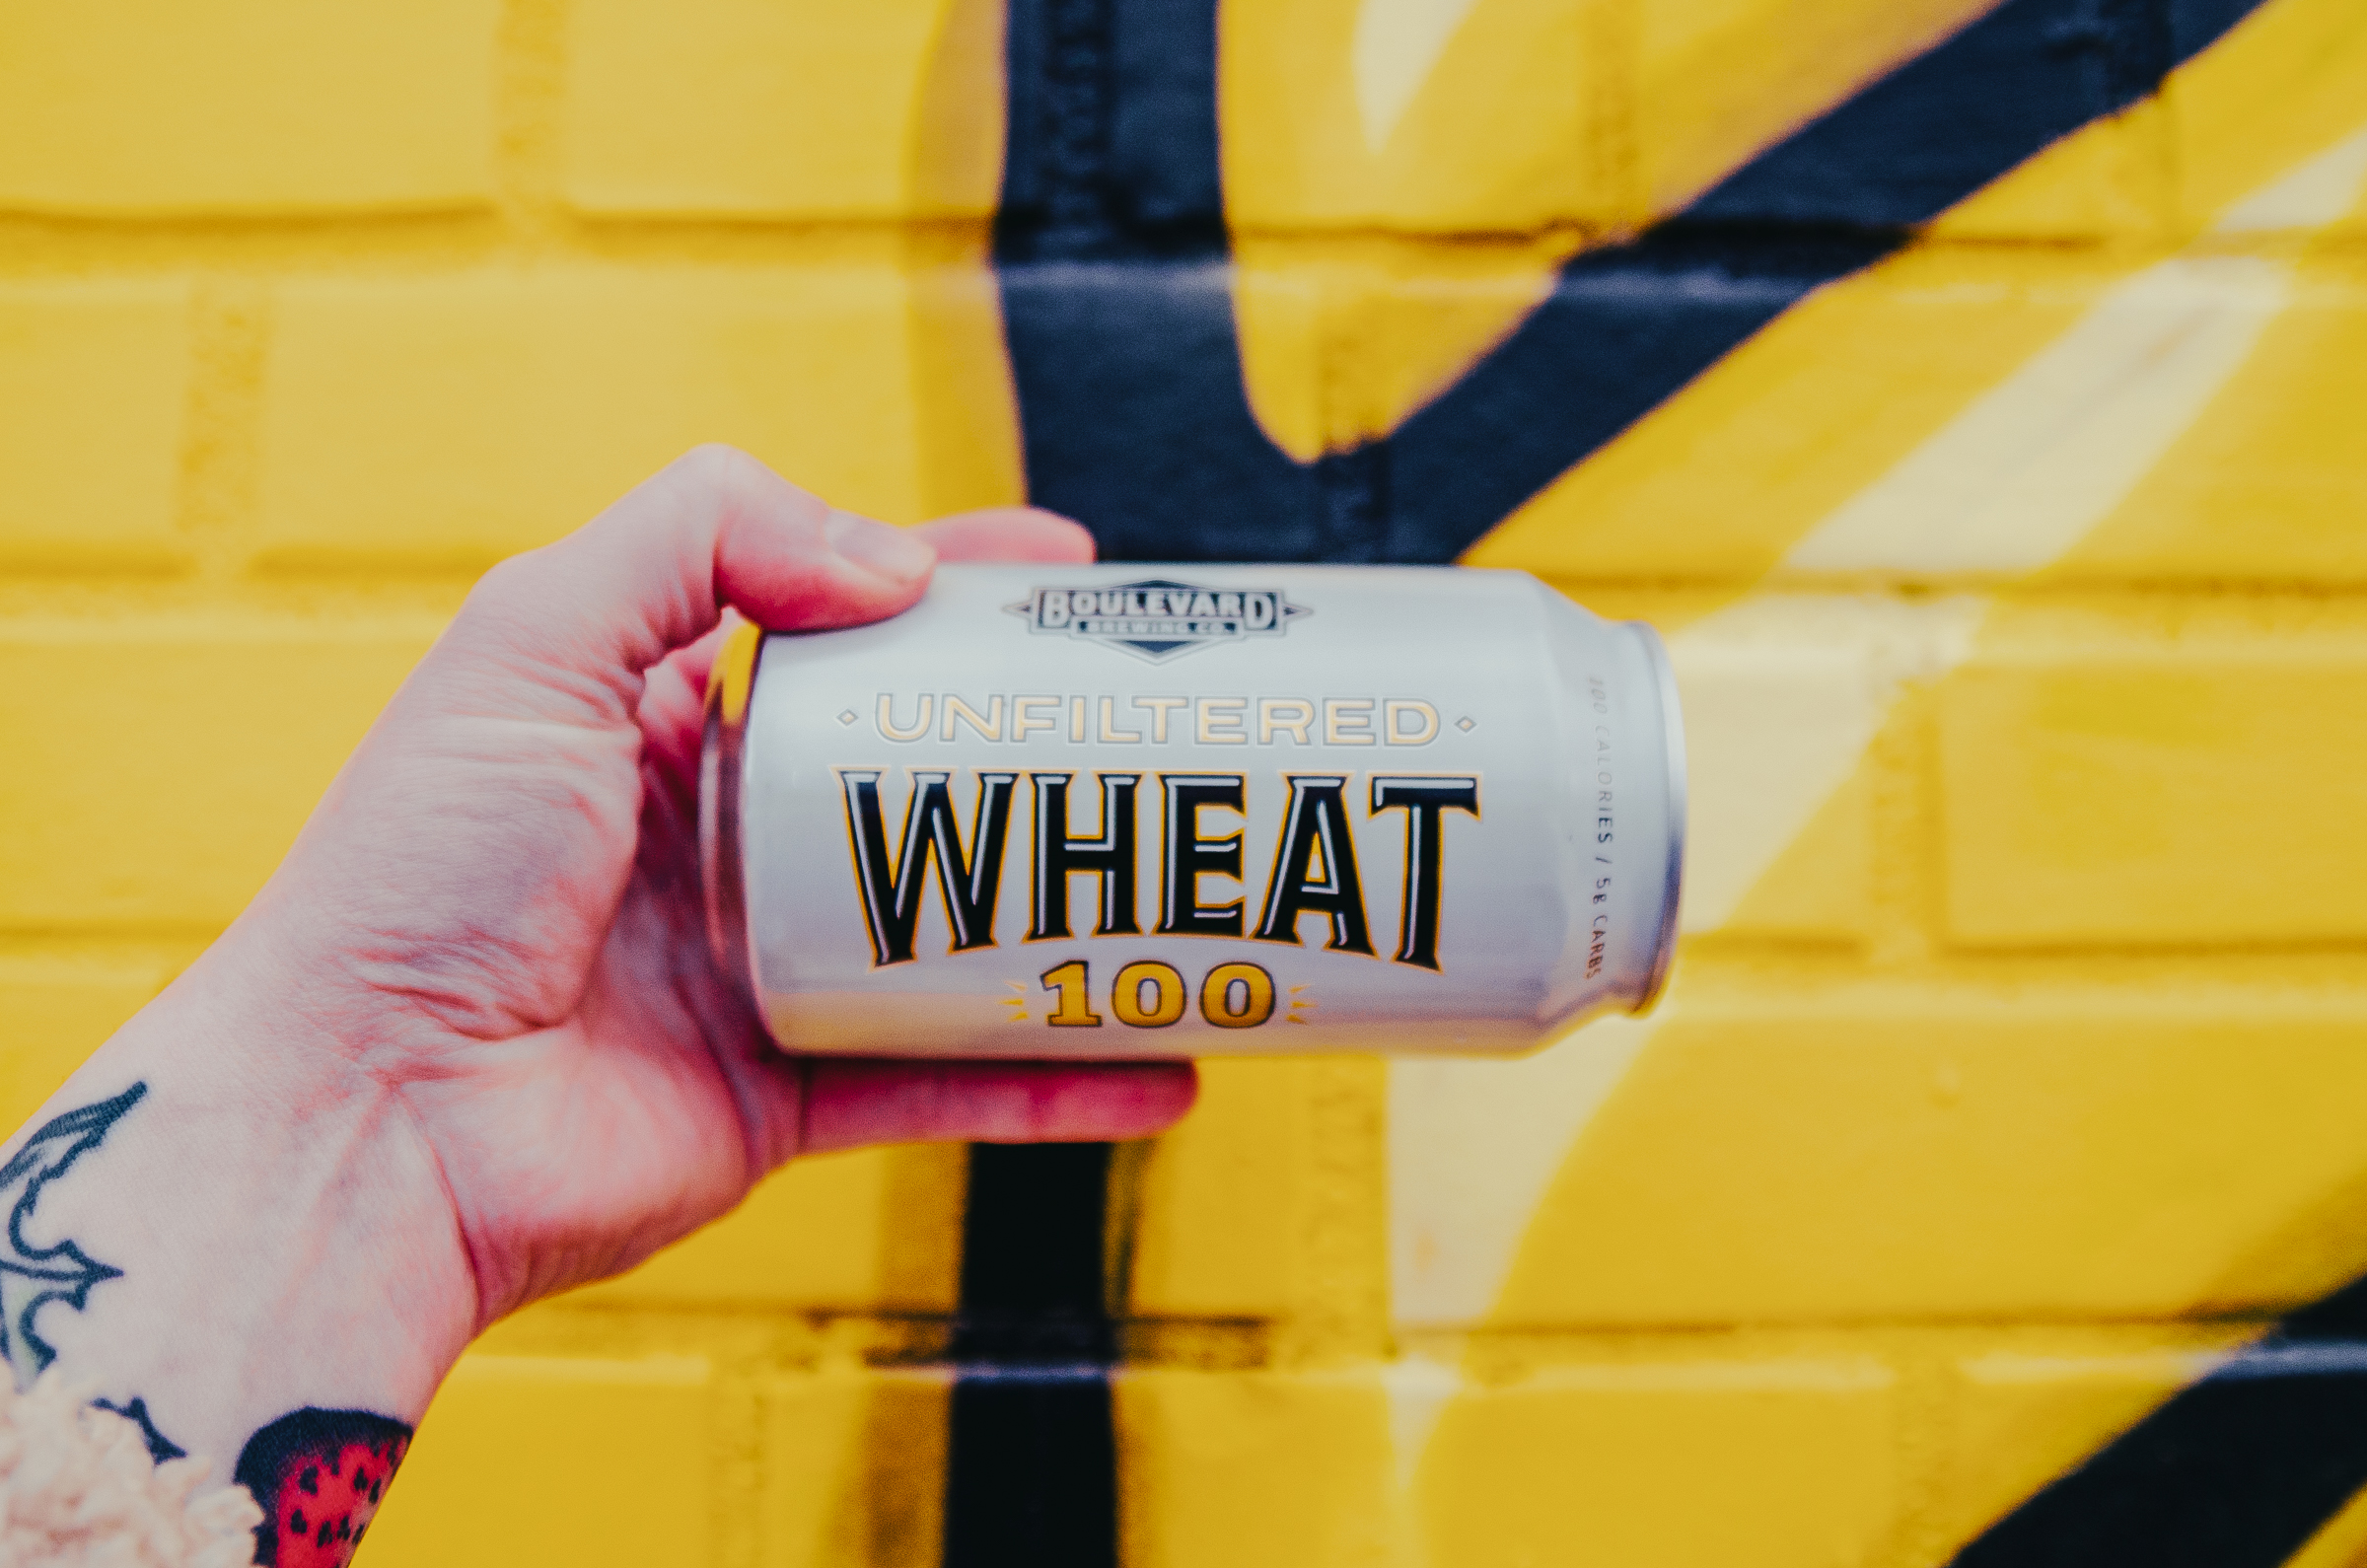 Wheat 100 party